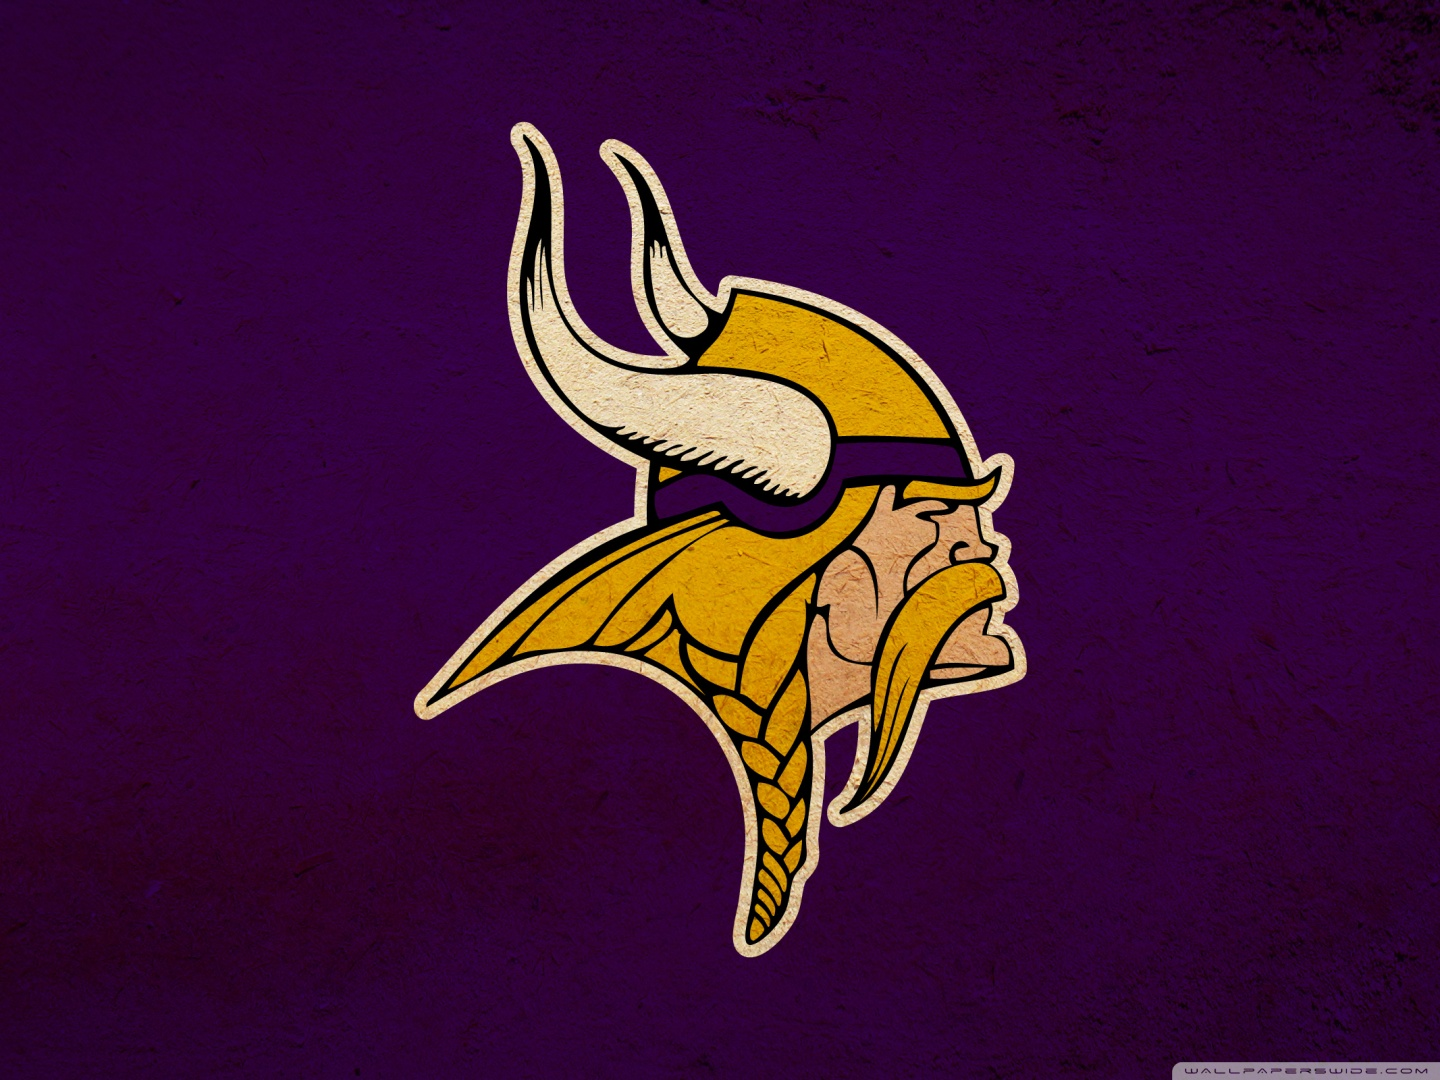 Viking Hd Wallpaper Posted By Ryan Peltier